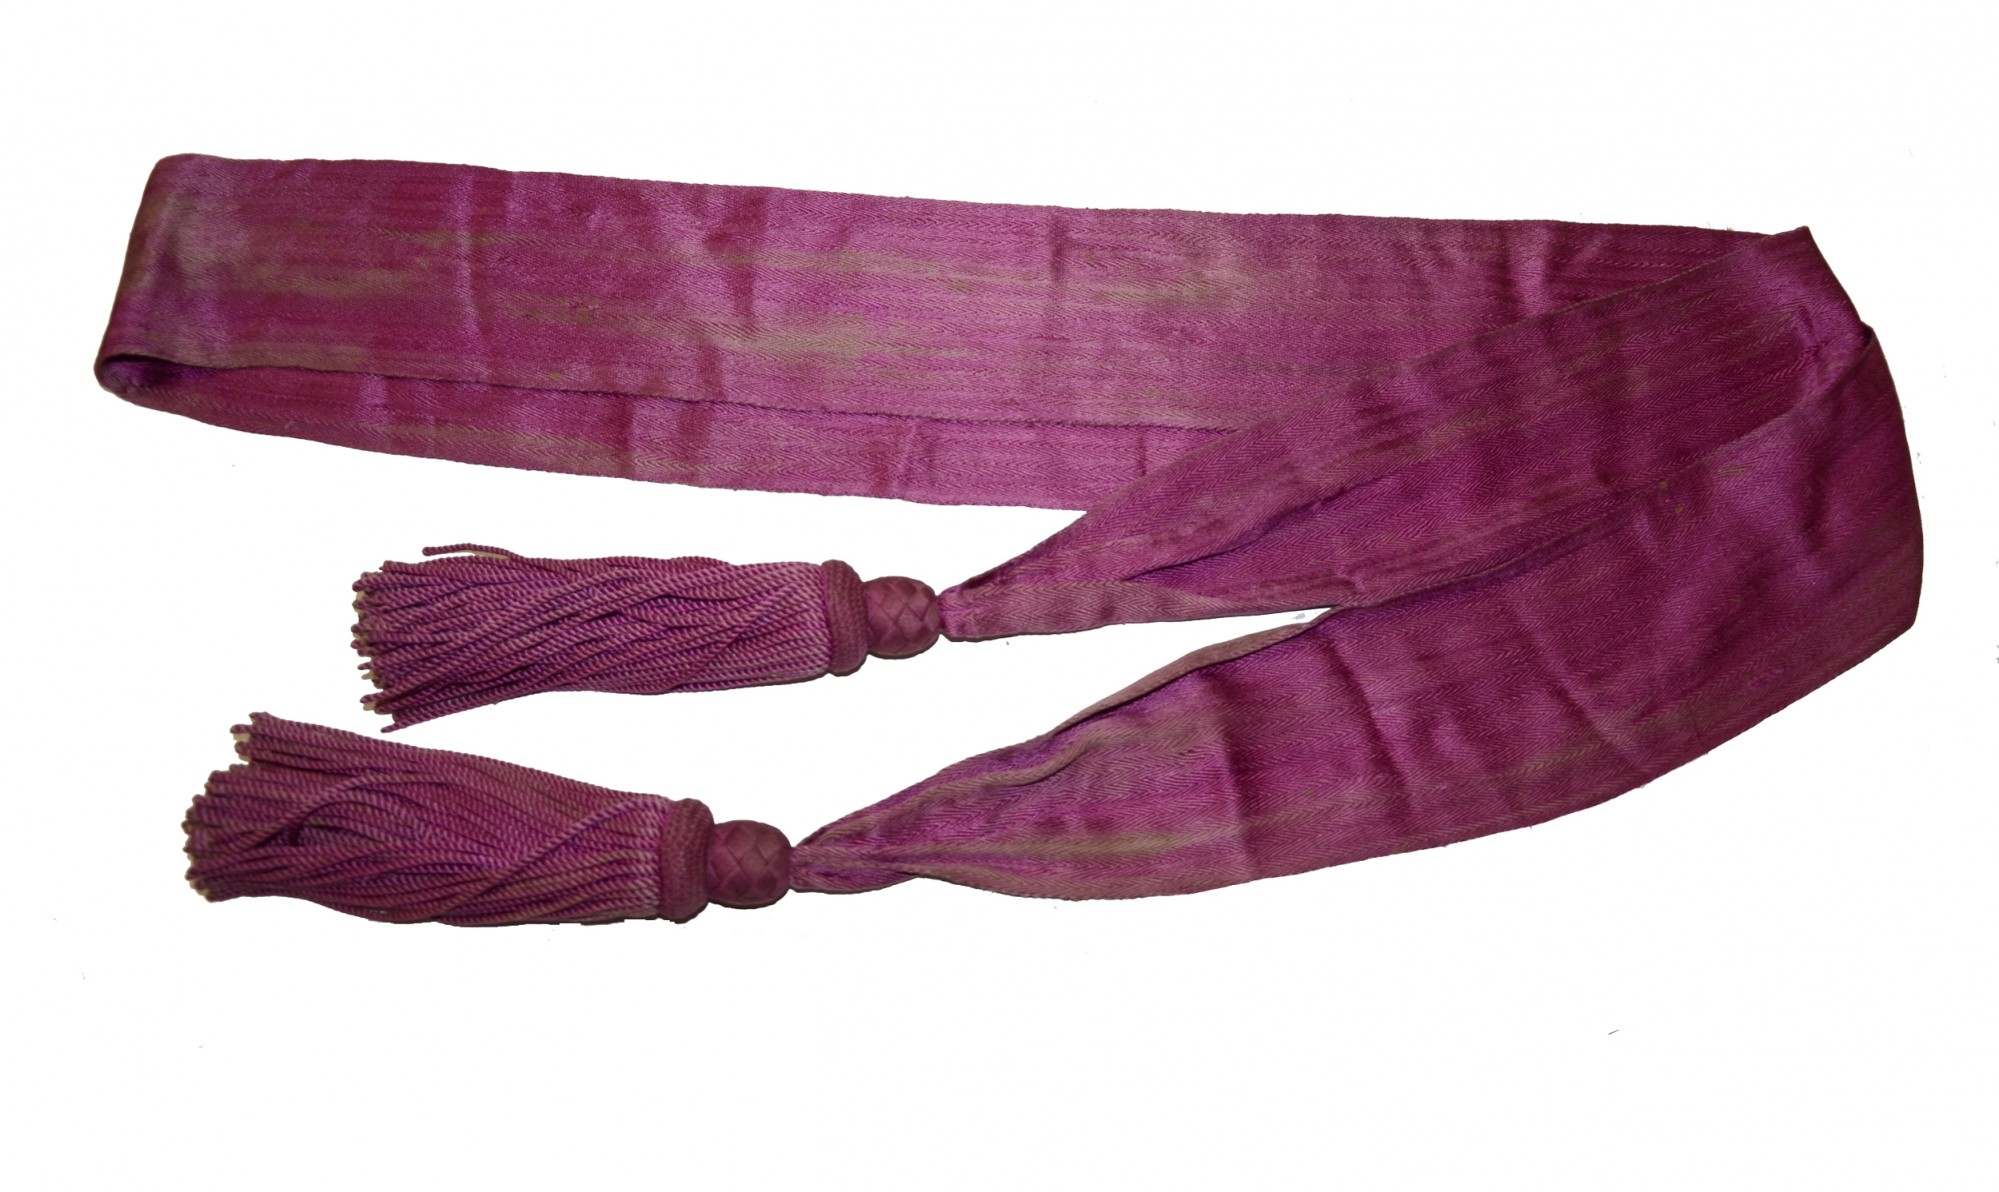 CIVIL WAR OFFICER'S SASH